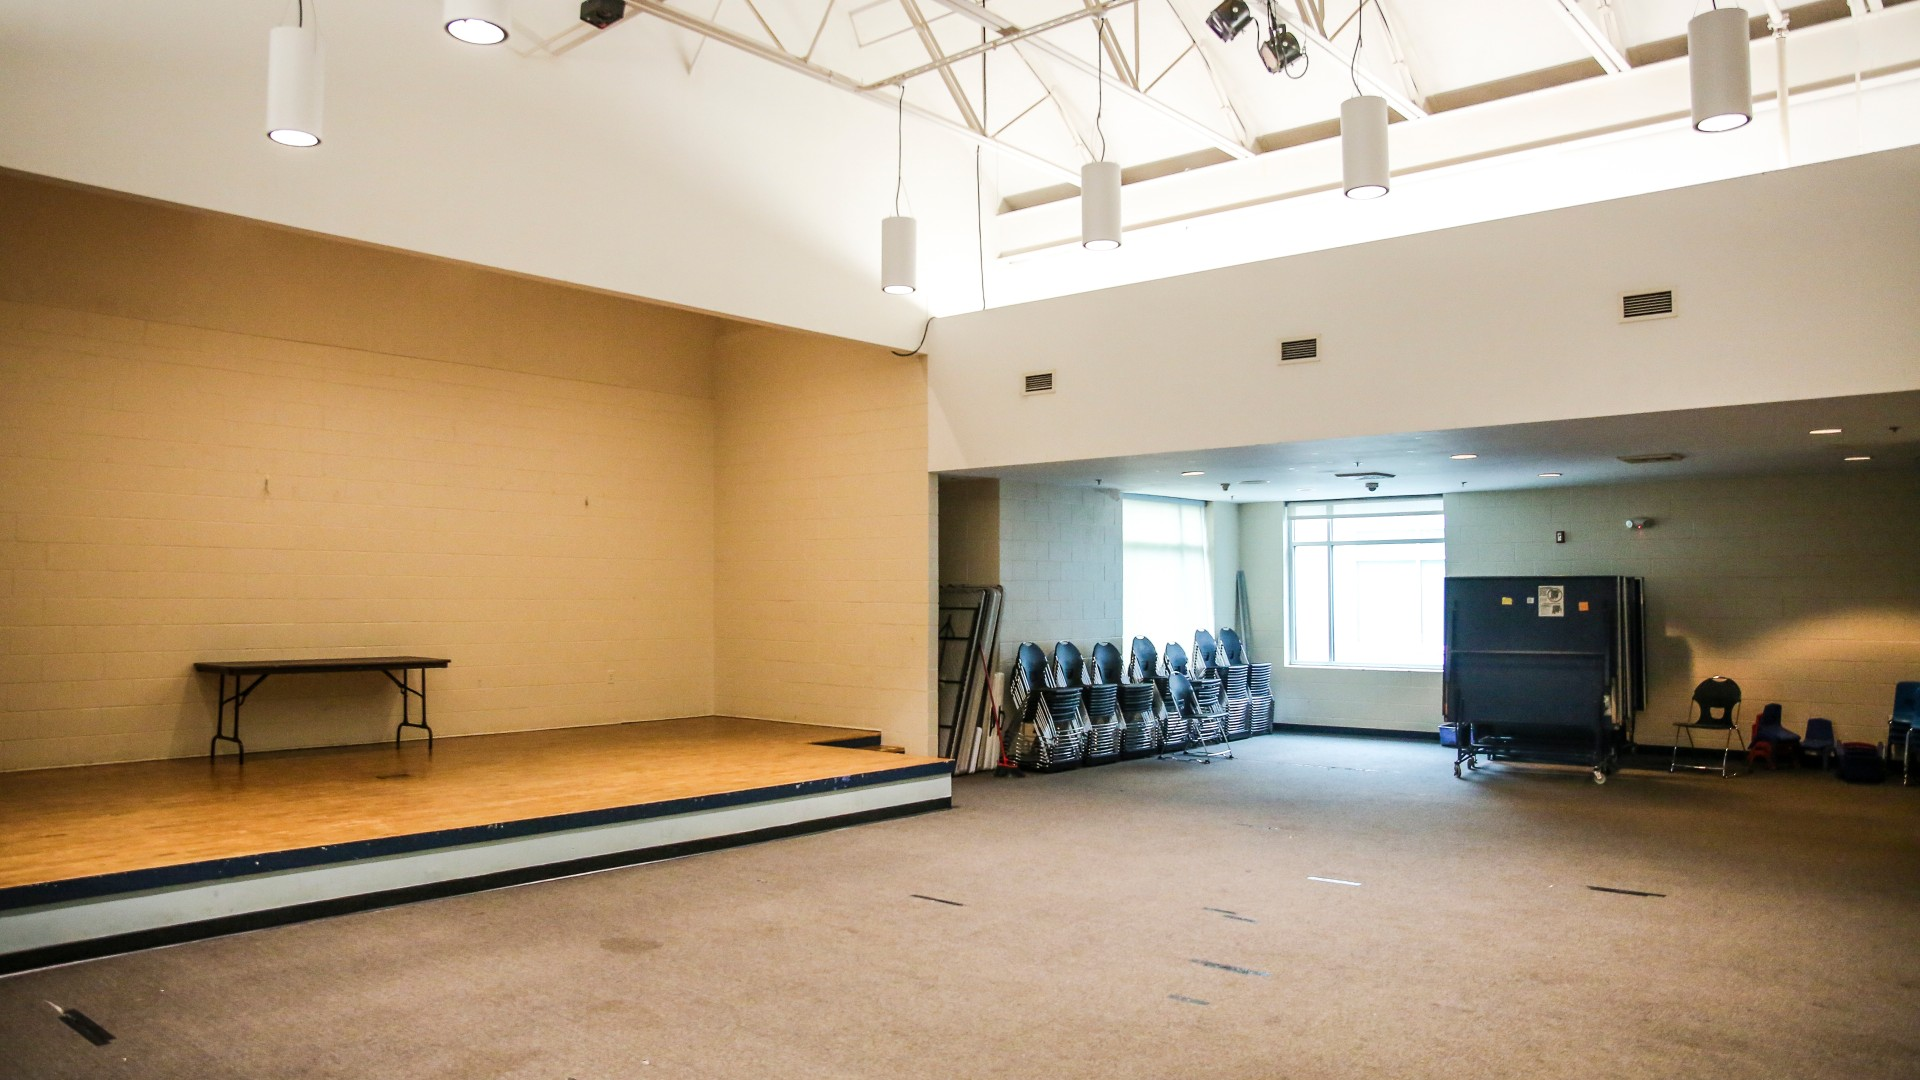 A large meeting room with a stage